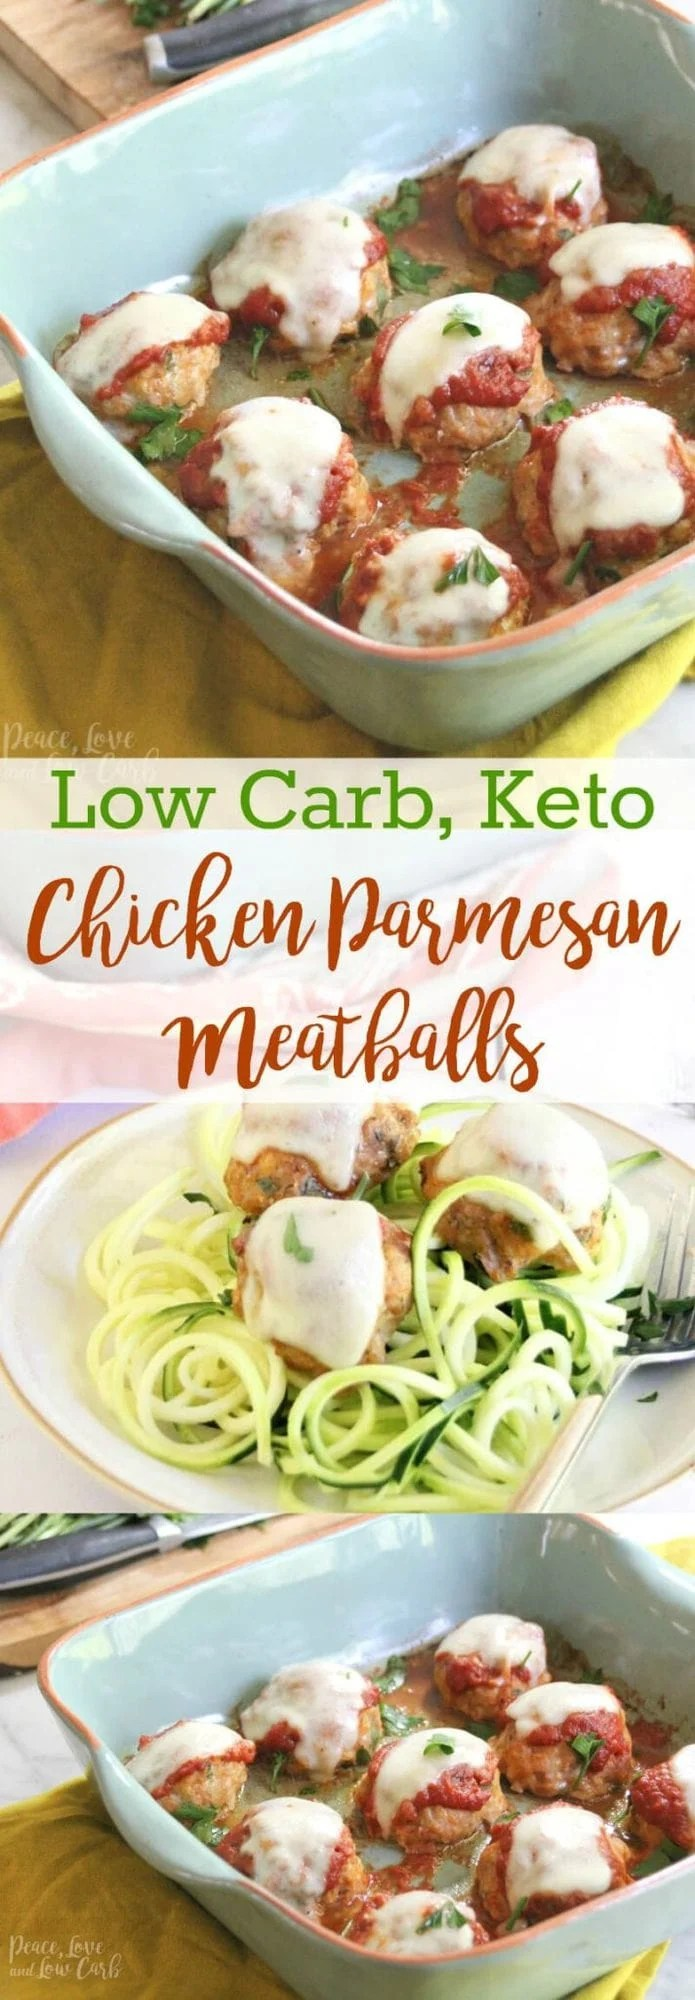 Low Carb Chicken Parmesan Meatballs | Peace Love and Low Carb